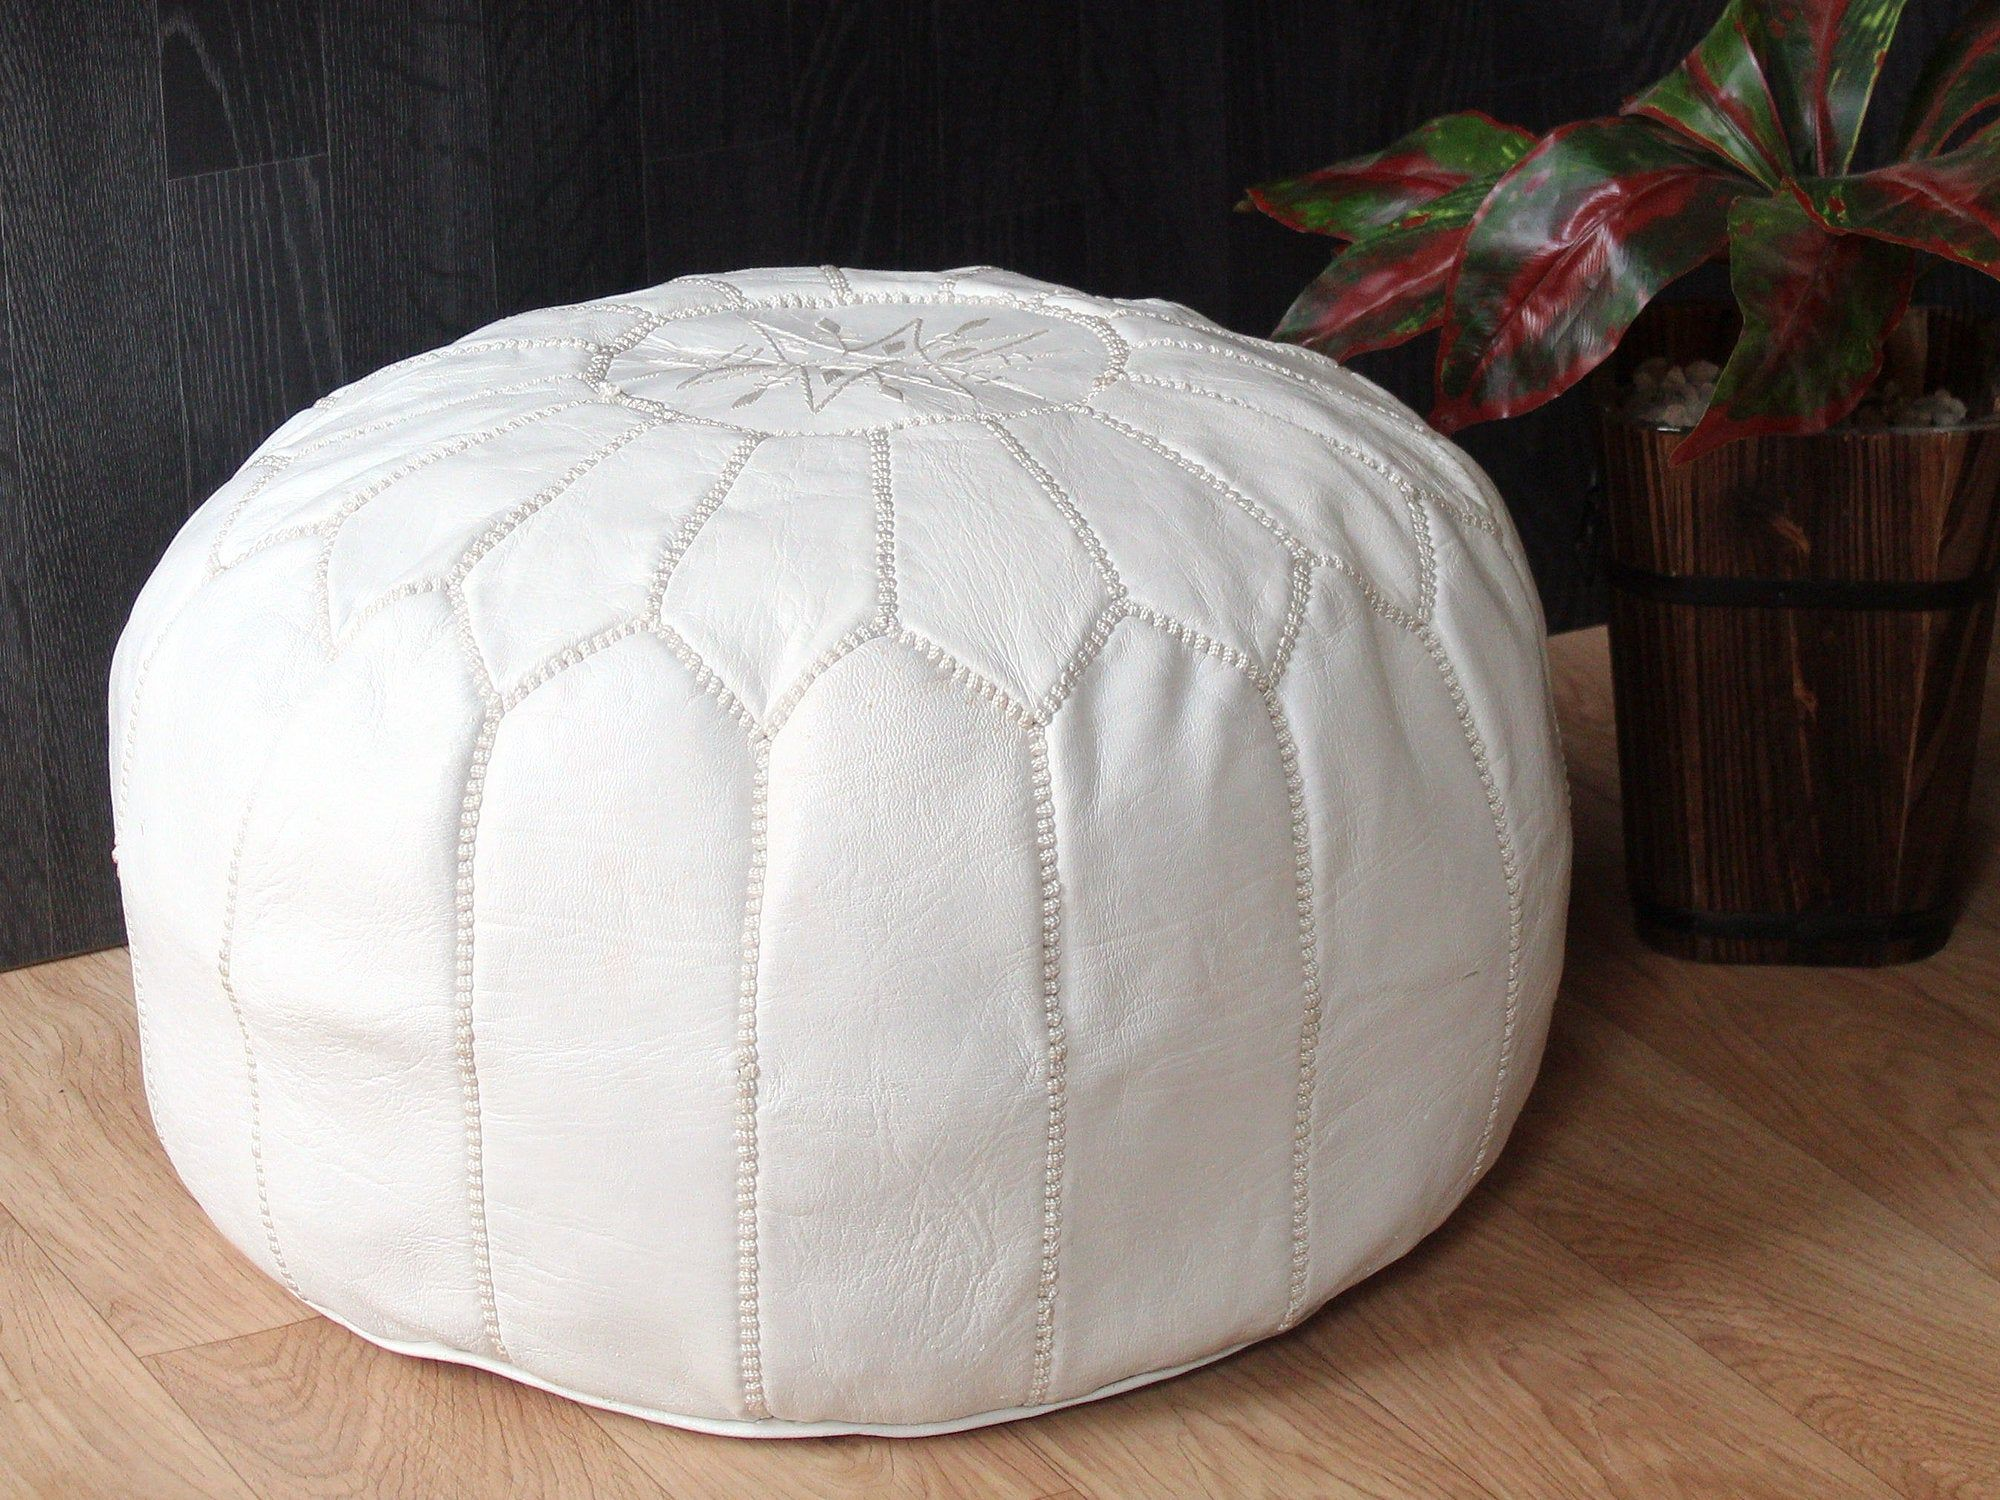 Pouf Ottoman Leather Moroccan Pouf Footstool Ottoman Pouf Leather Pouf Handmade Pouf Leather White Pouf Leather Chair Pouf Ottoman Leather Pouf Pouf Footstool